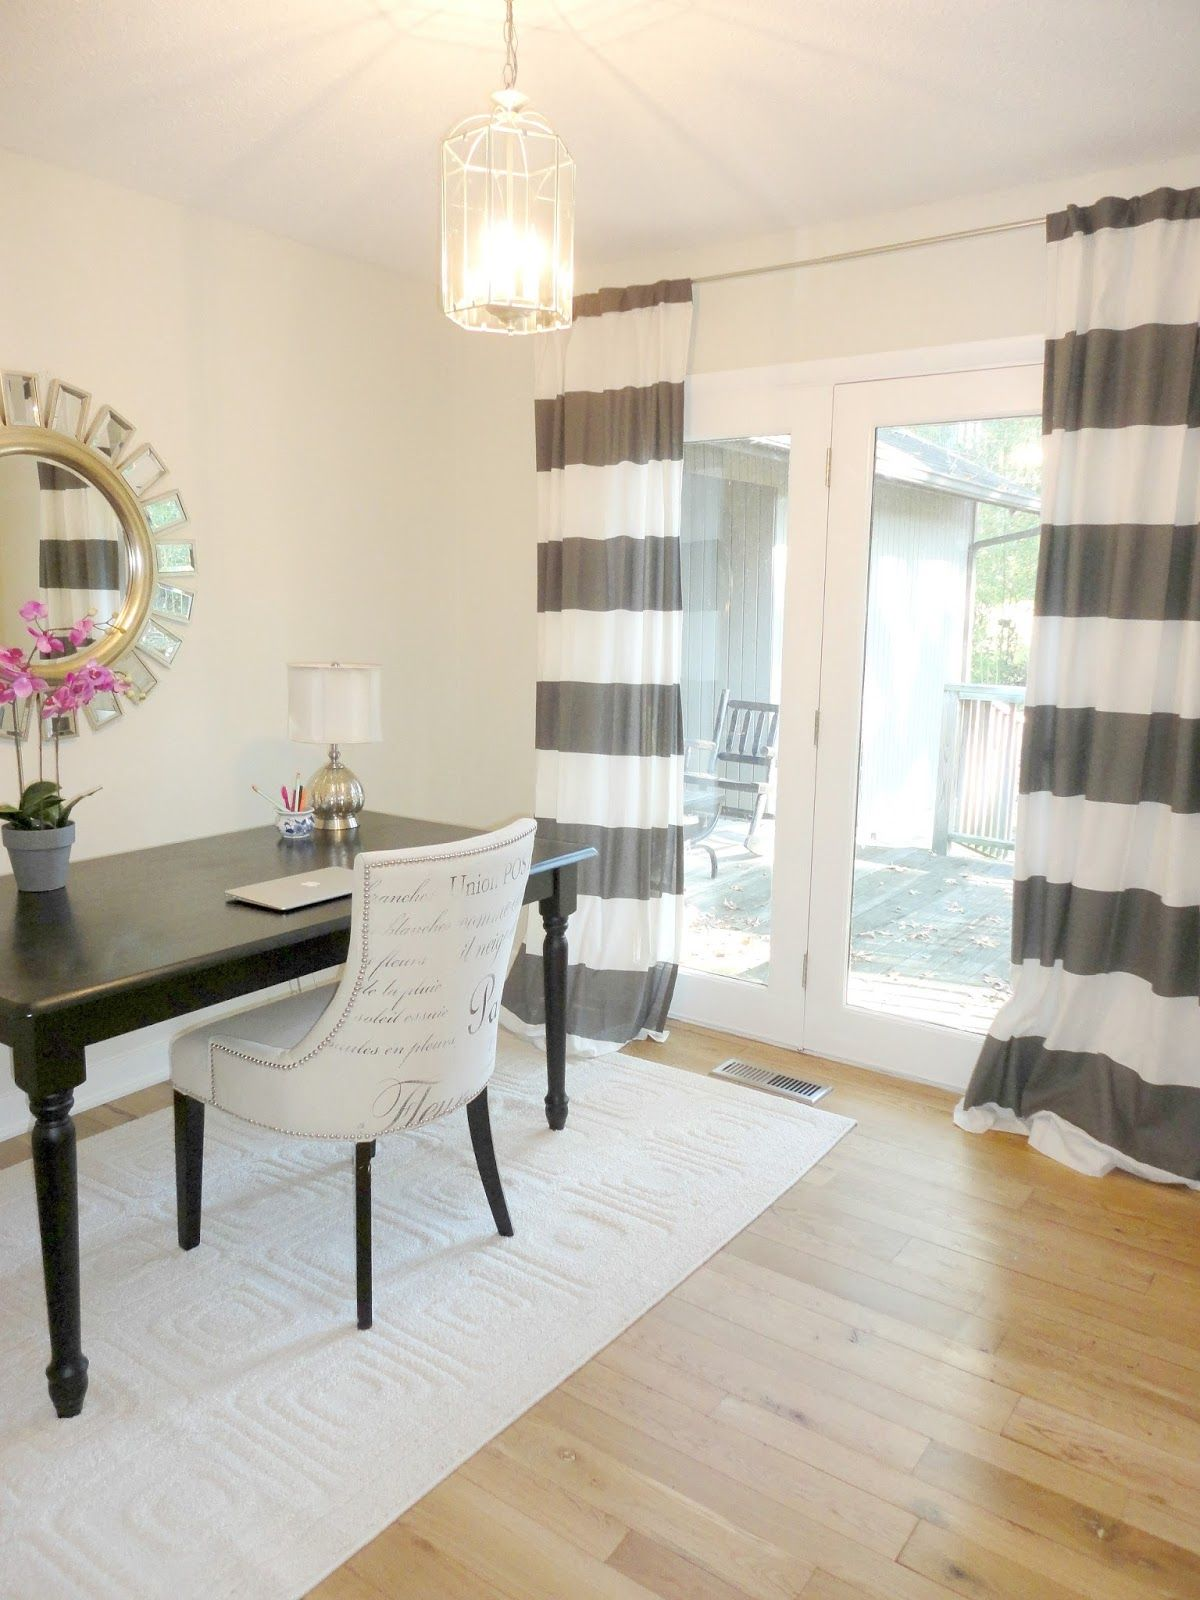 Diy No Sew Two Toned Curtains Great Tutorial On How To